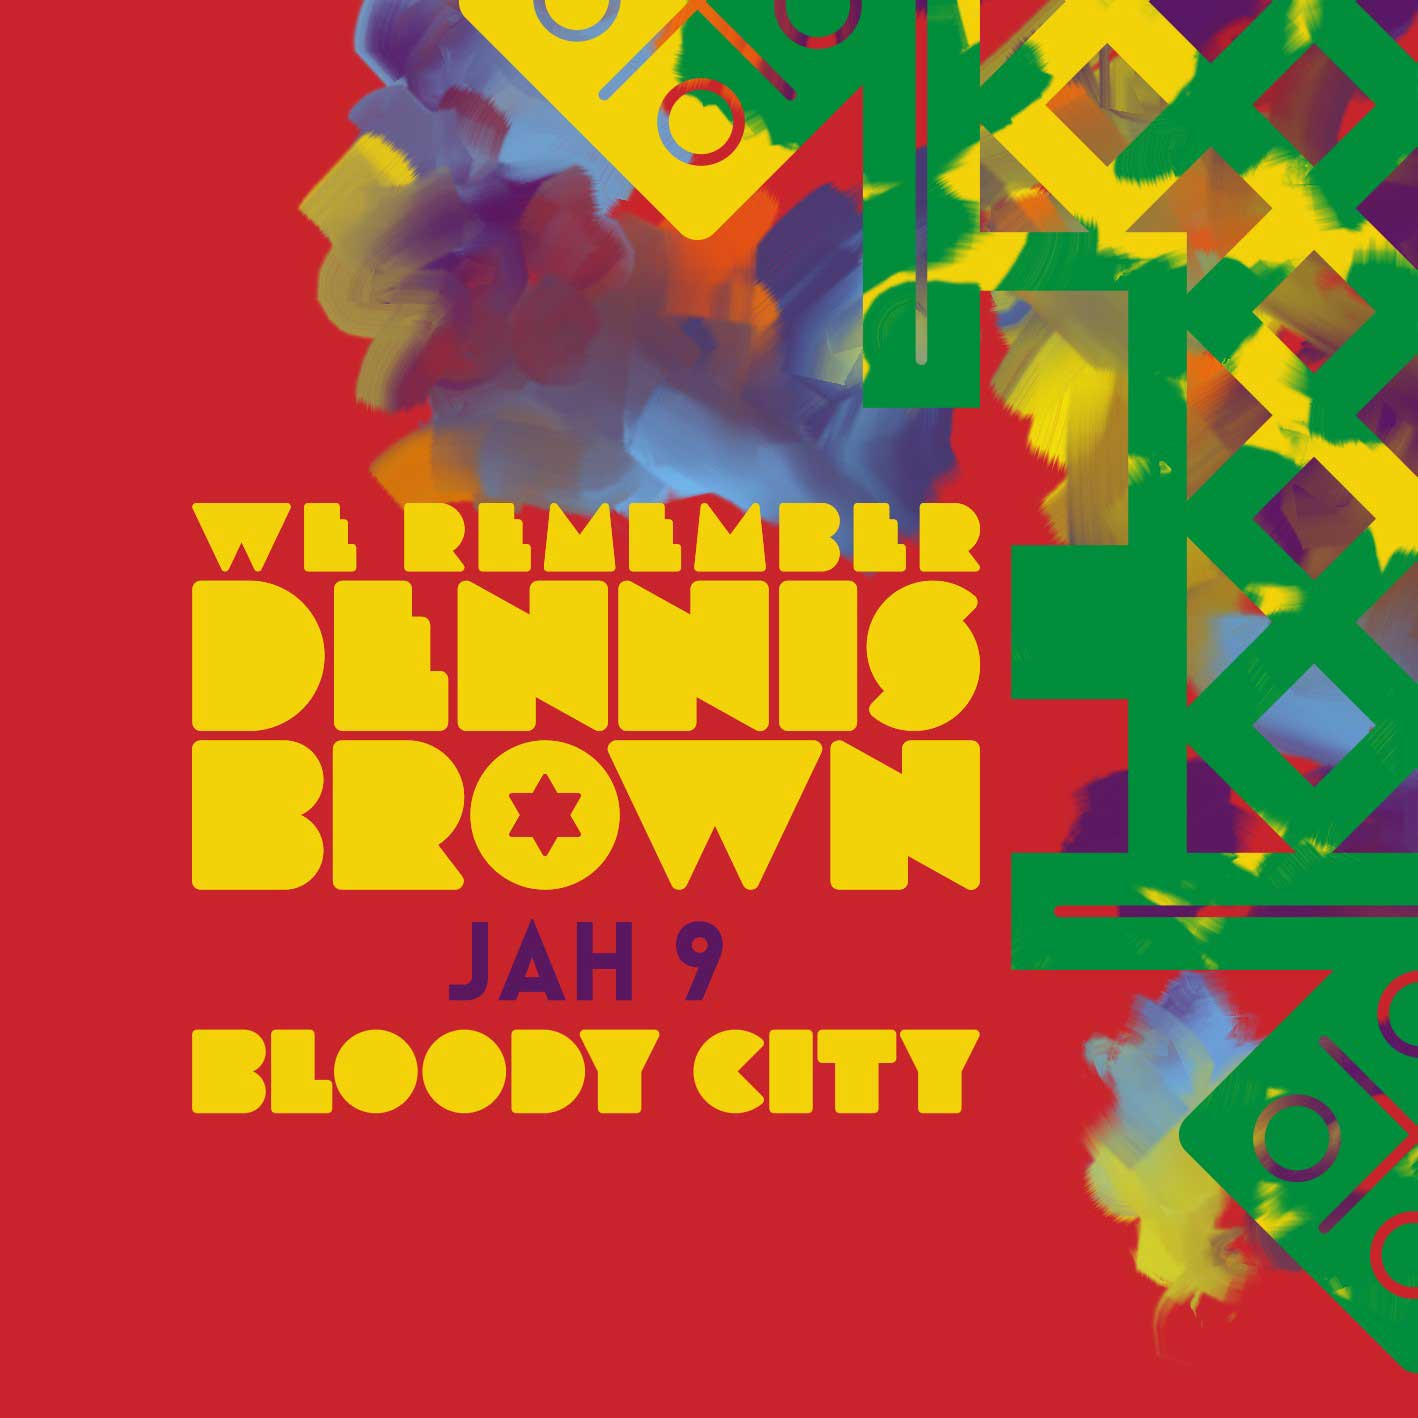 Dennis_Brown-Jah9-Bloody_City-Cover